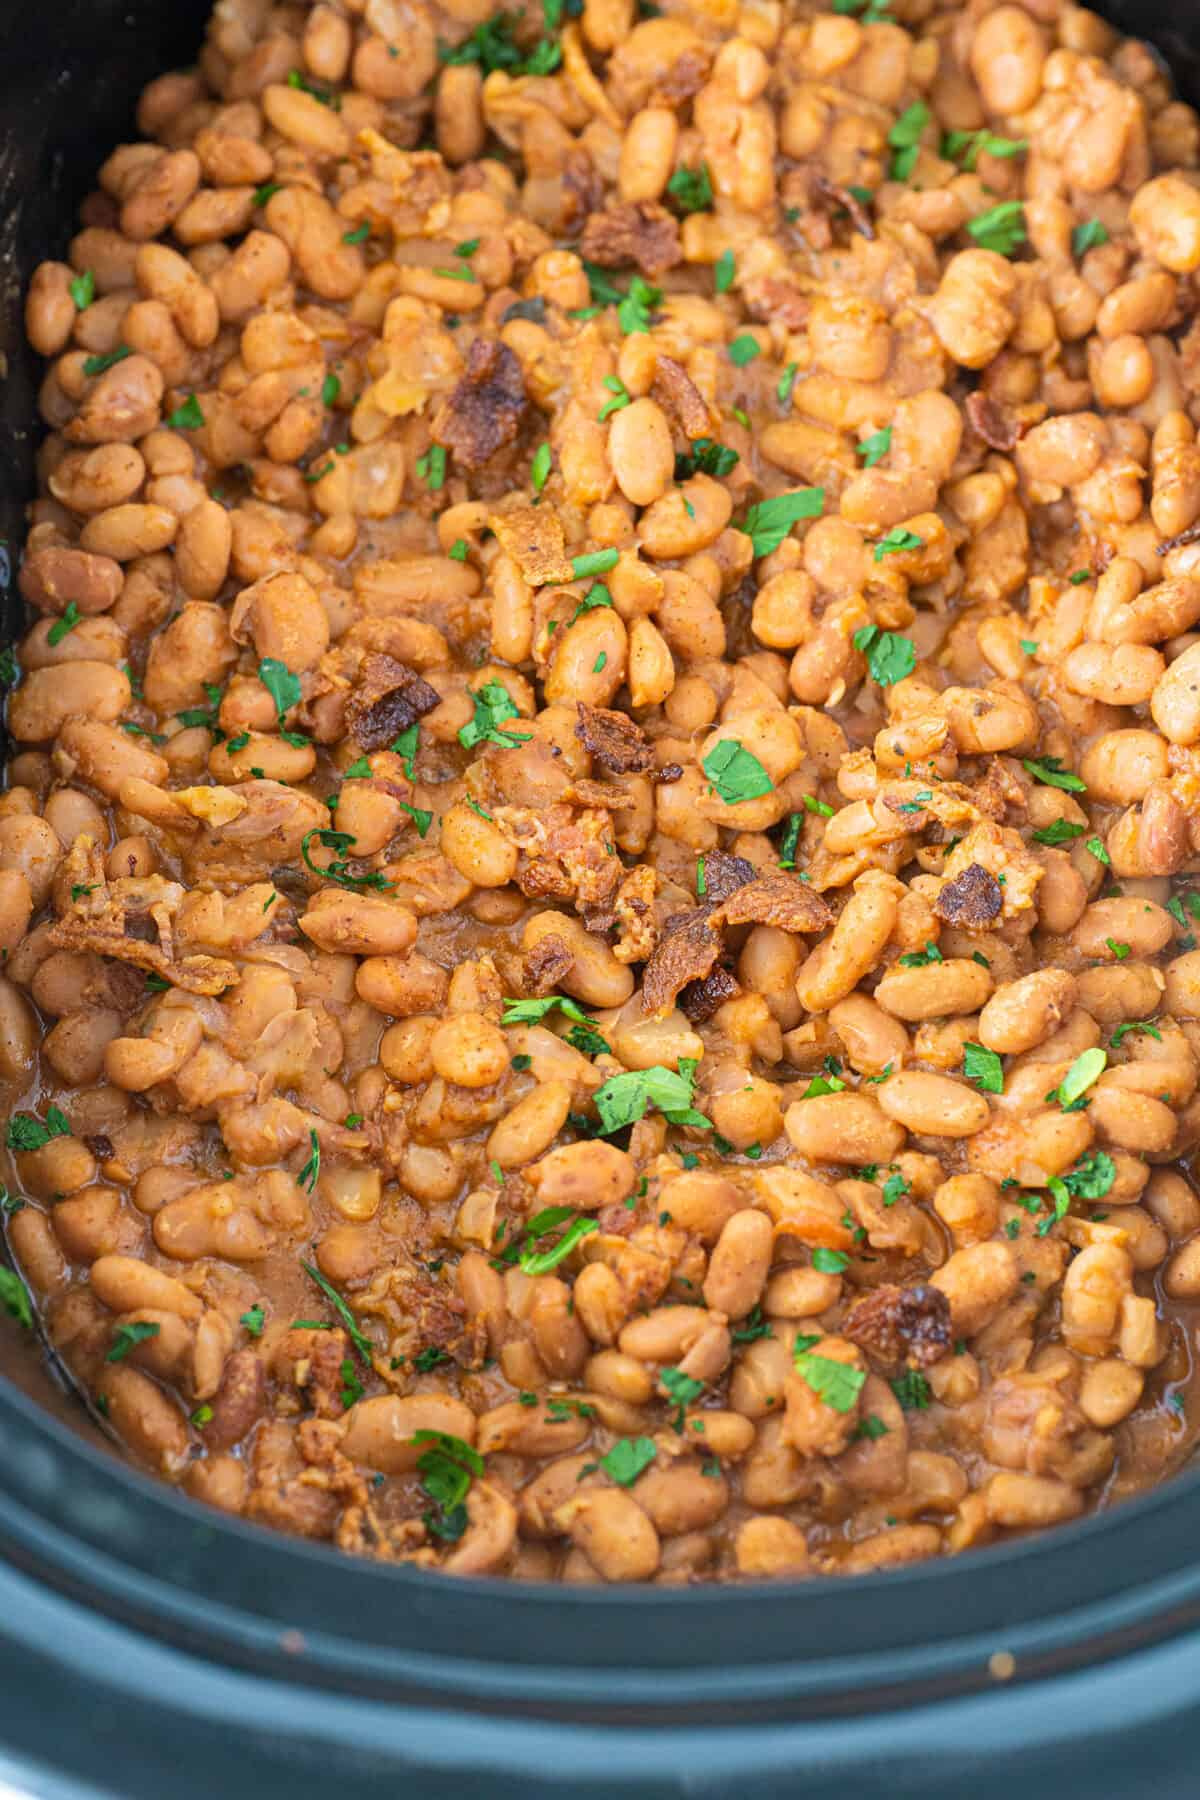 Ranch style beans in a black slow cooker